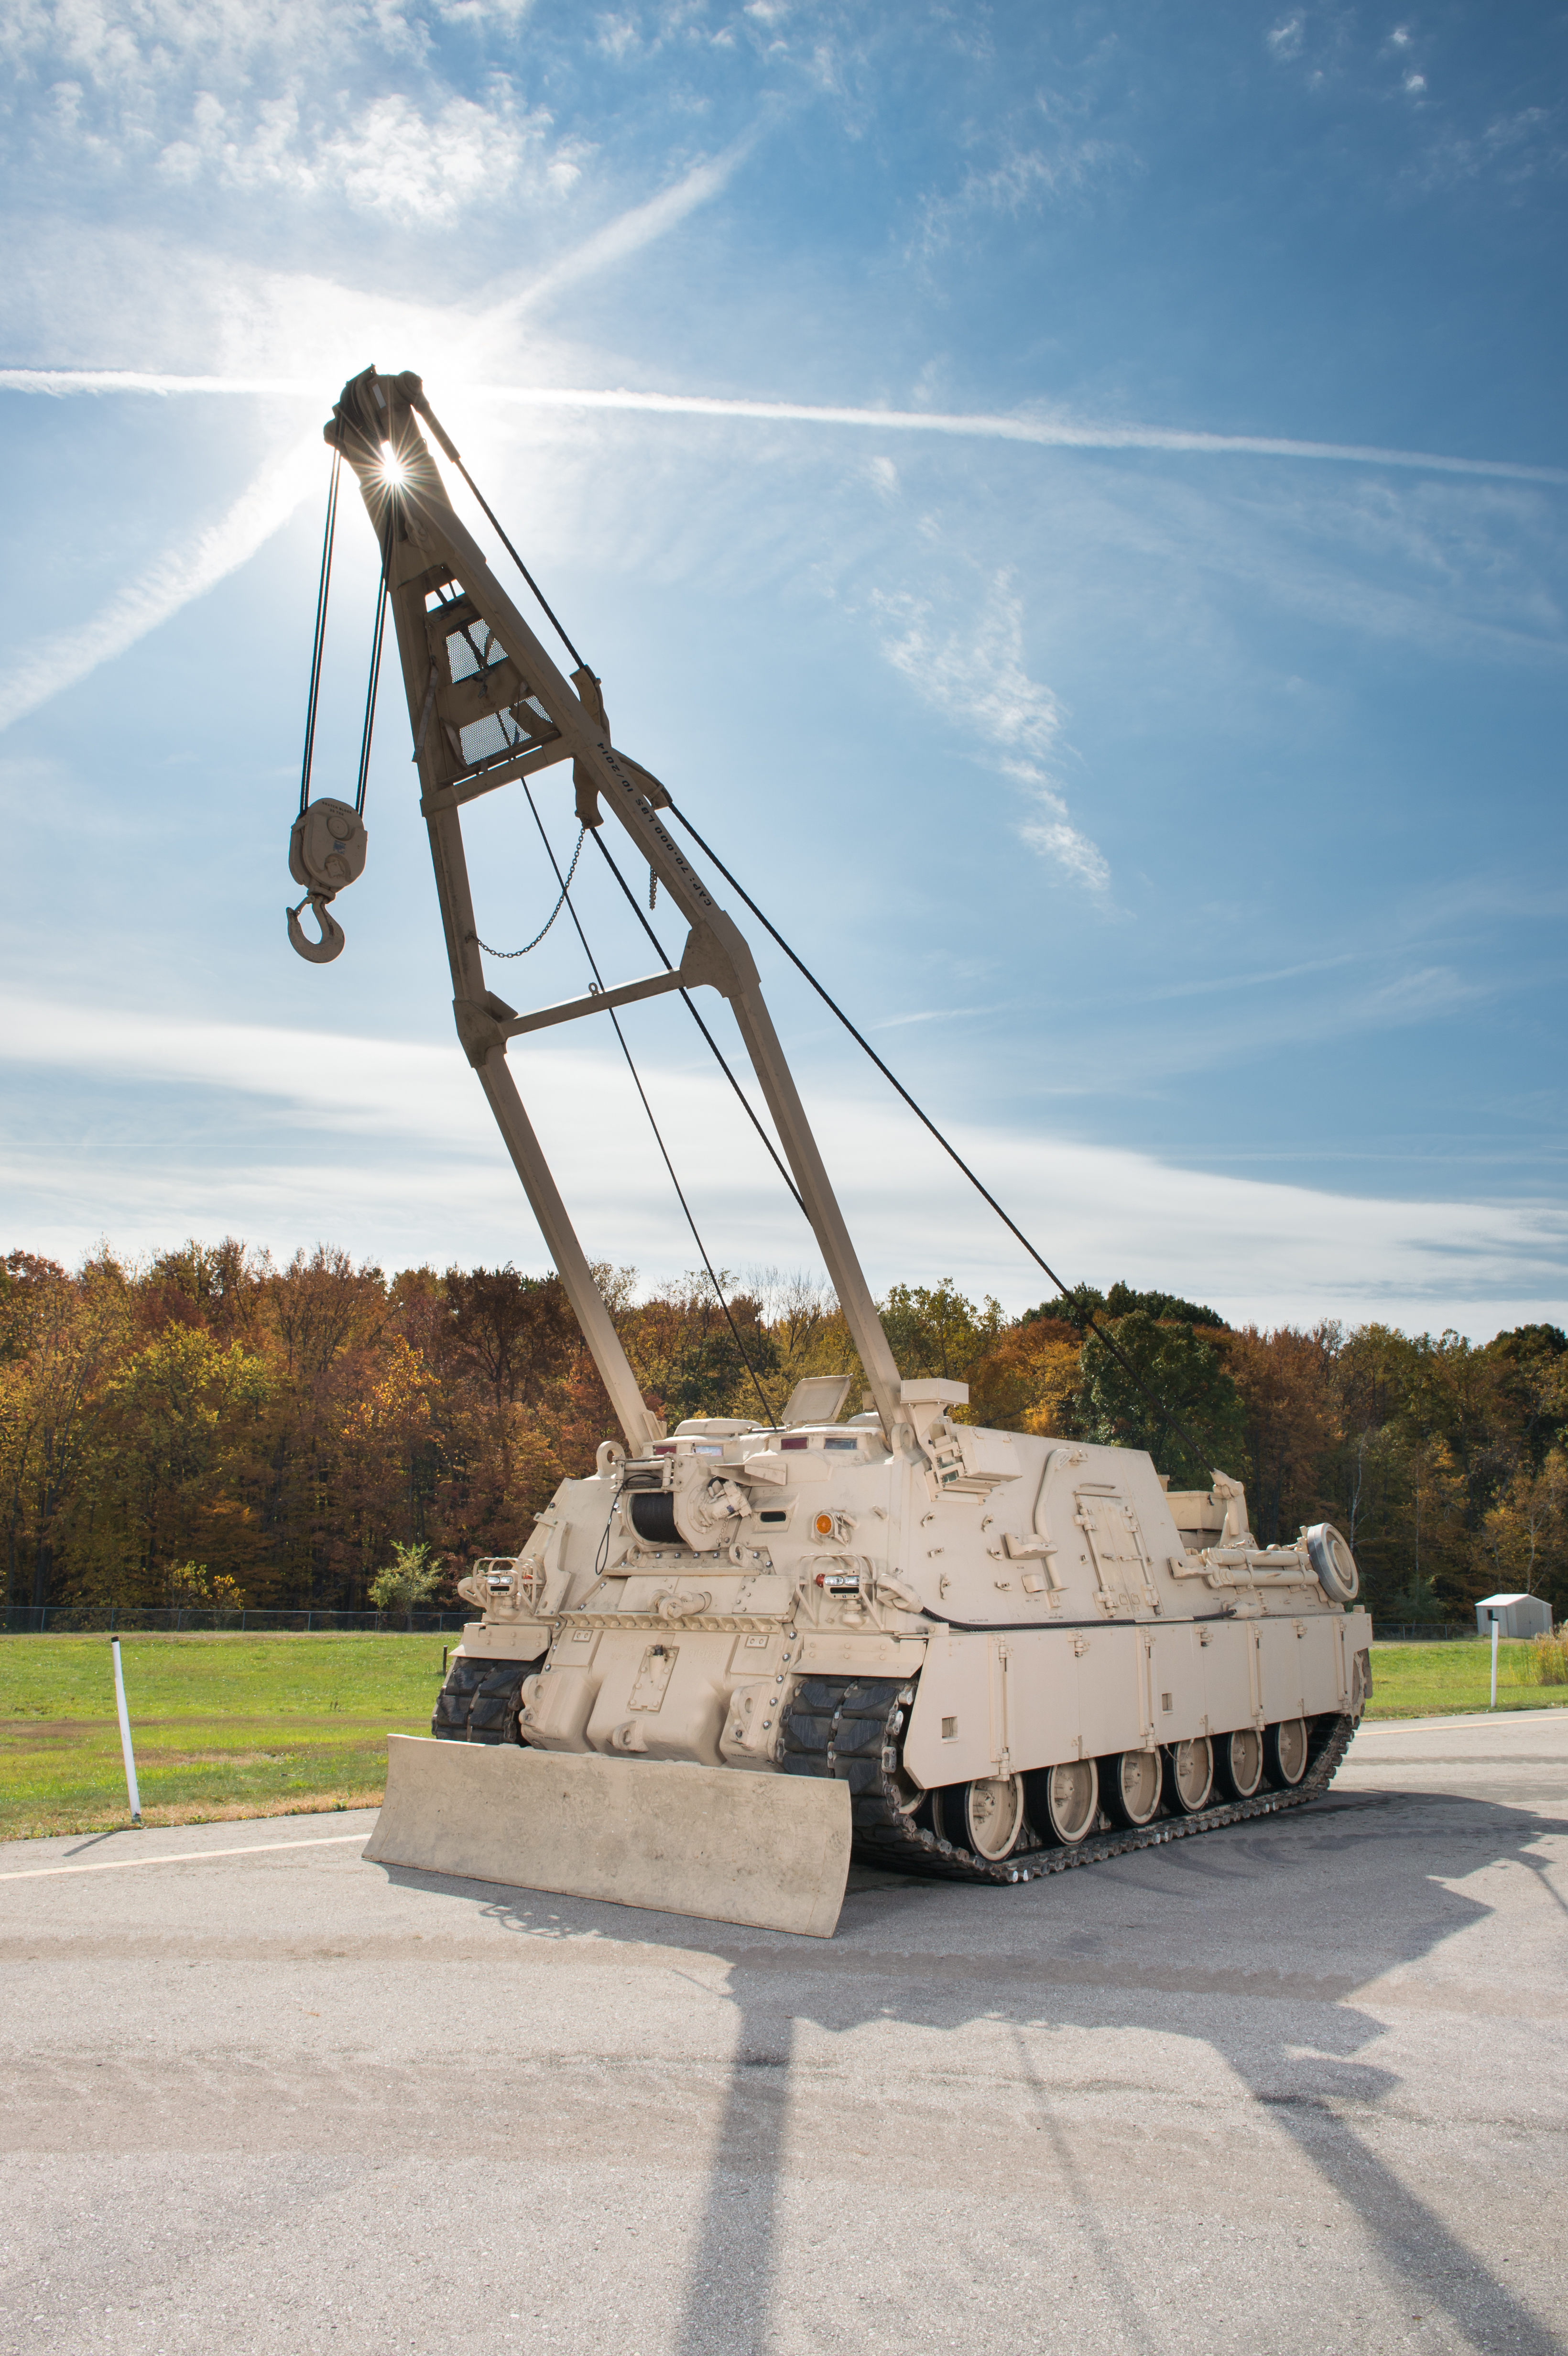 BAE Systems will perform technical support and sustainment of M88 recovery vehicles under a new contract from the U.S. Army. (Photo: BAE Systems)